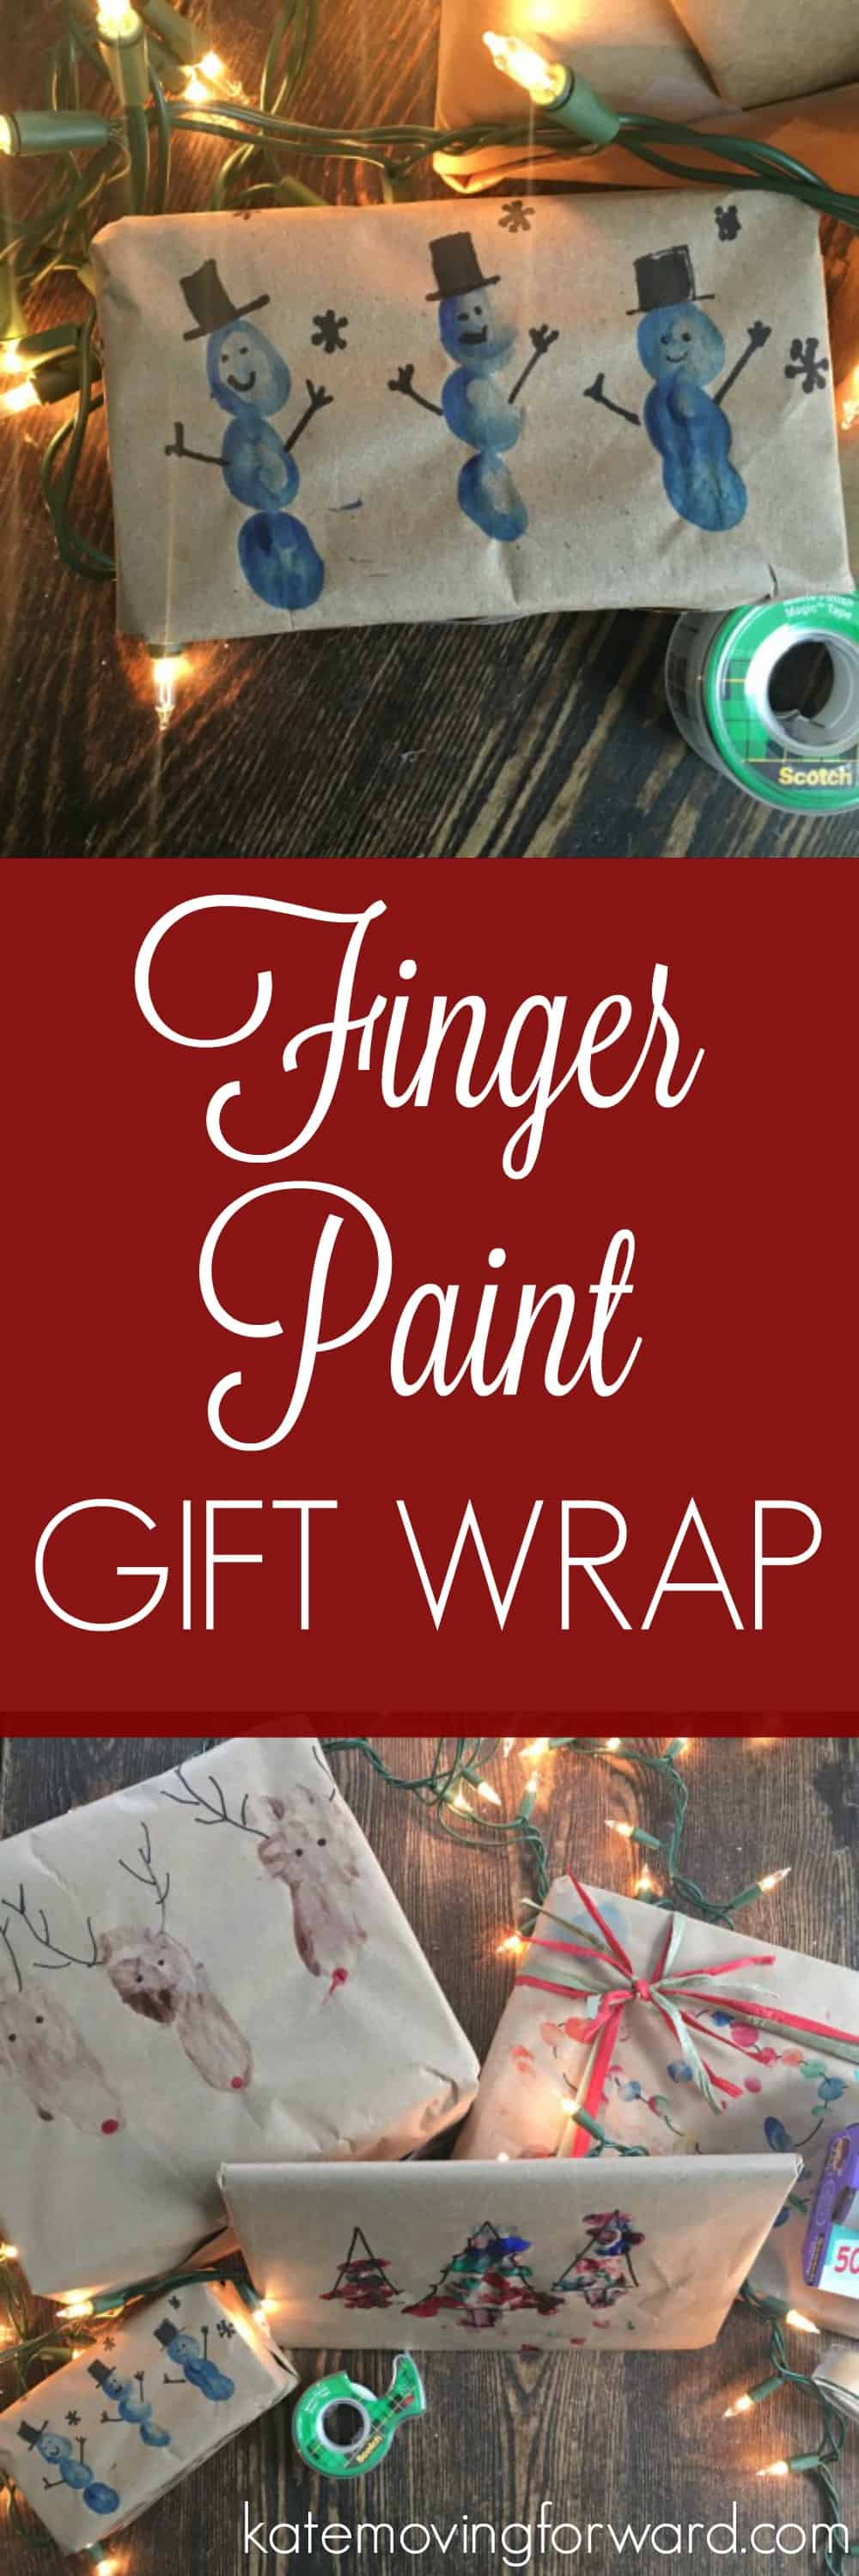 Finger Paint Gift Wrap - Need a creative gift wrapping idea? I love this easy craft you can do with your kids that also doubles as keepsake gift wrapping!